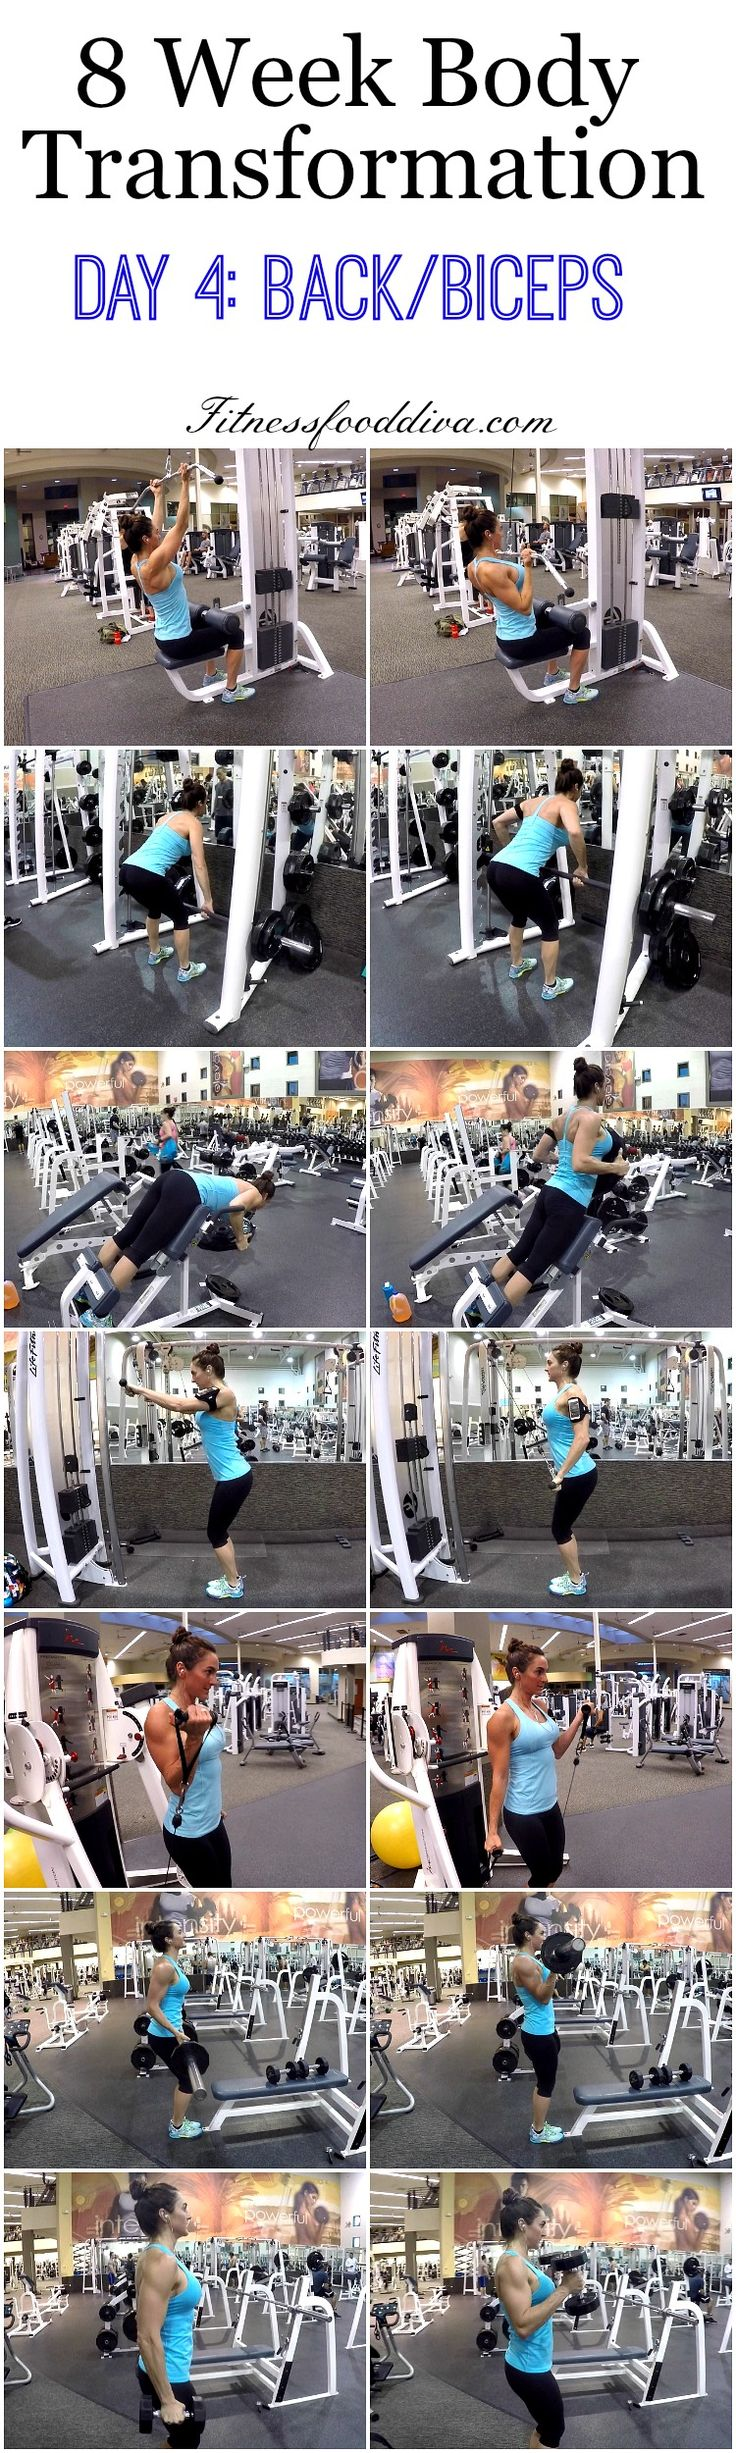 Build bigger biceps with this one trick 8 Week Body Transformation: Day 4 Back and Biceps